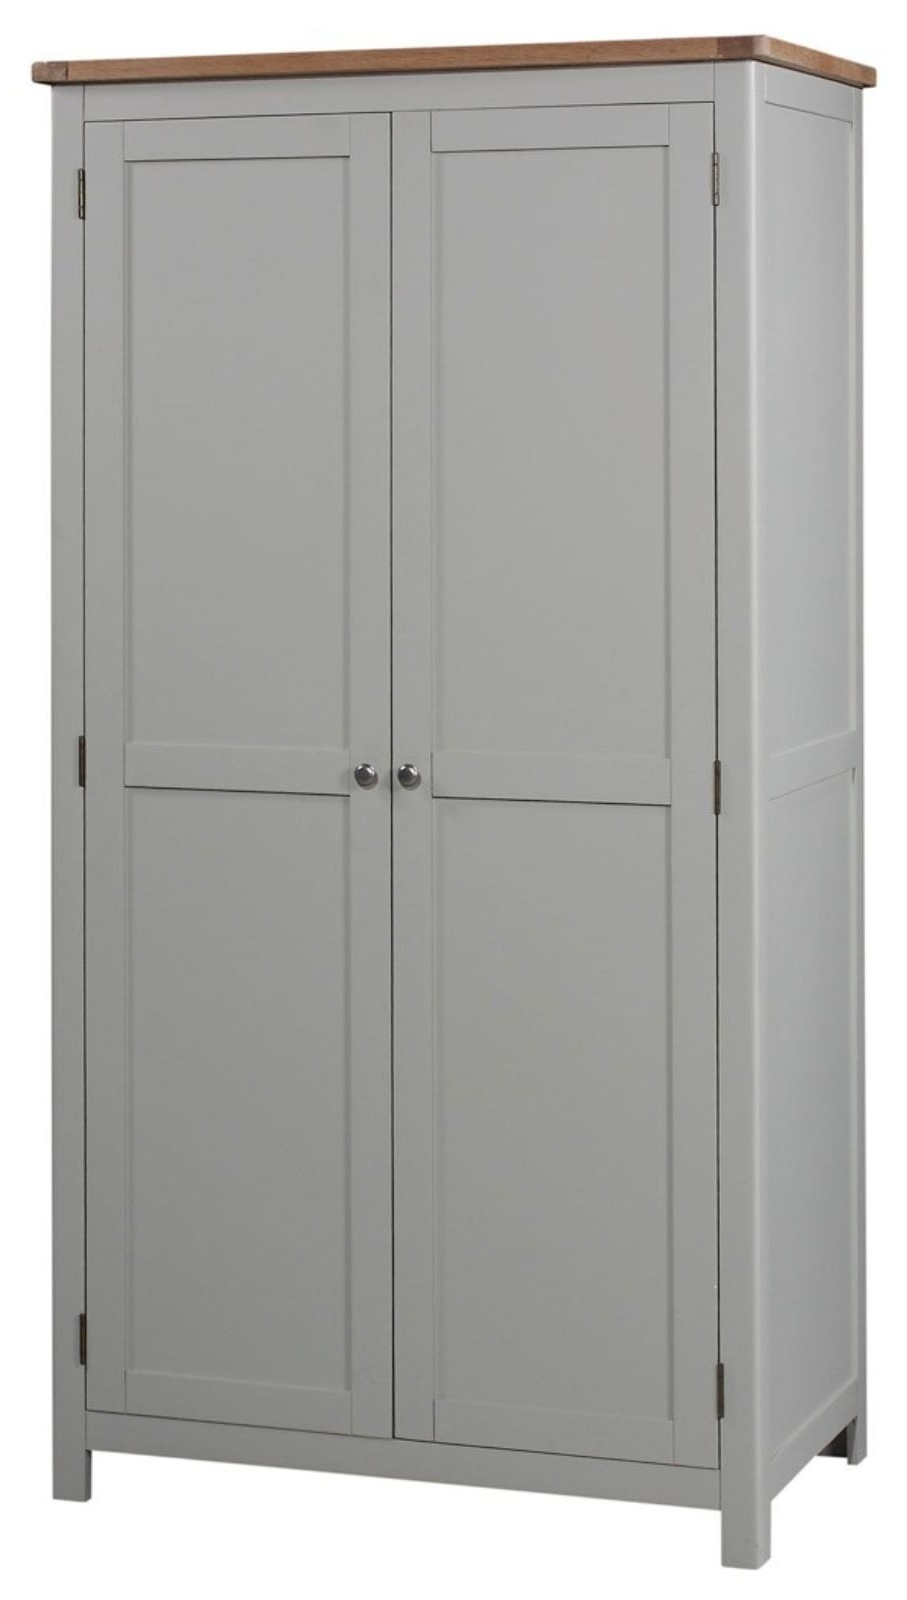 Widely Used Grey Wardrobes Throughout Grey Painted Double Wardrobe (View 15 of 15)